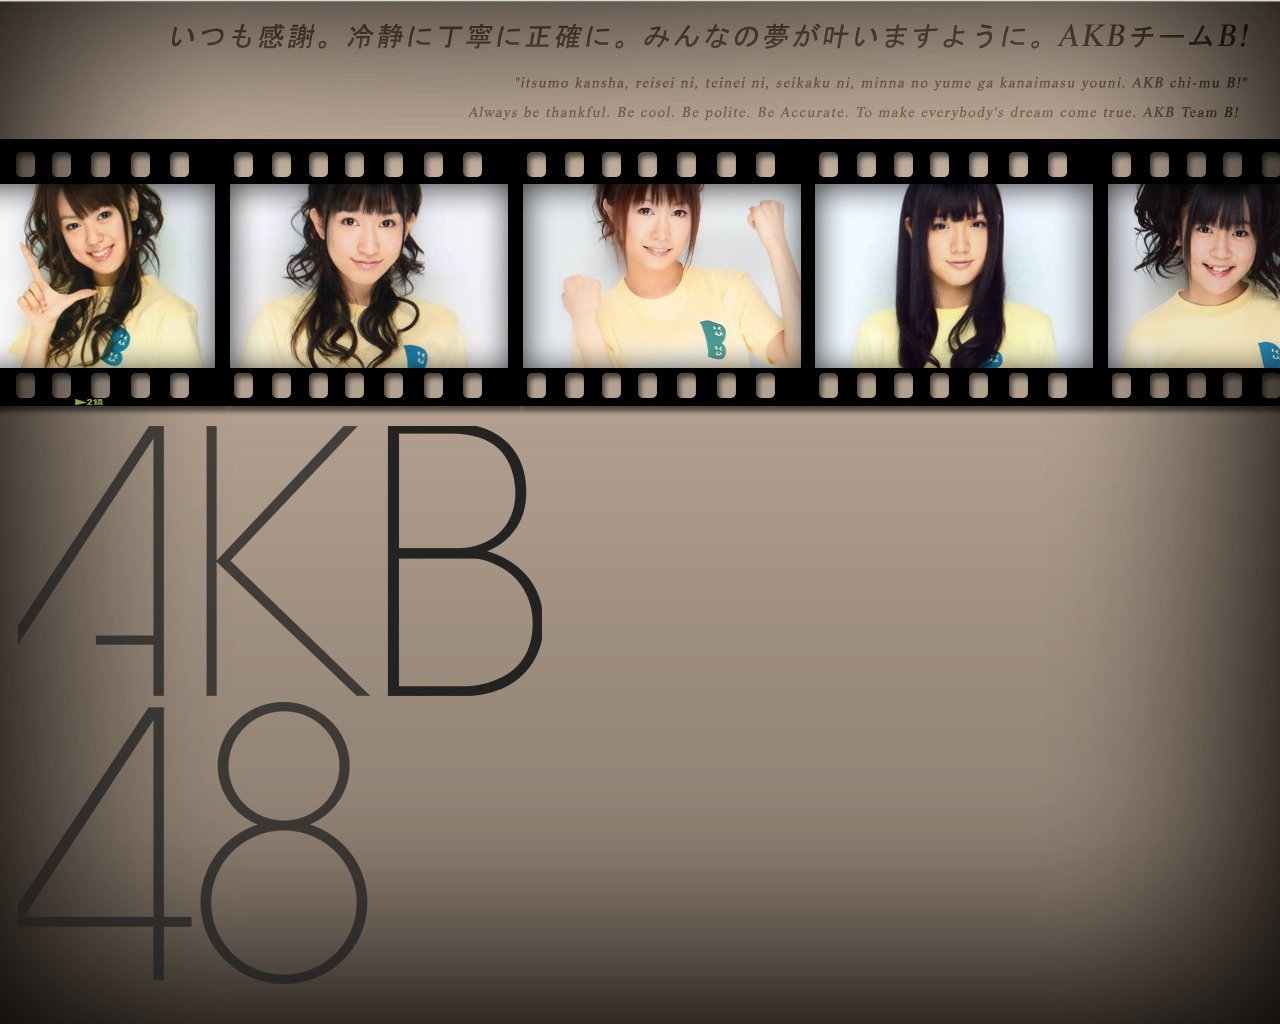 AKB48 Hits Up The 3DS